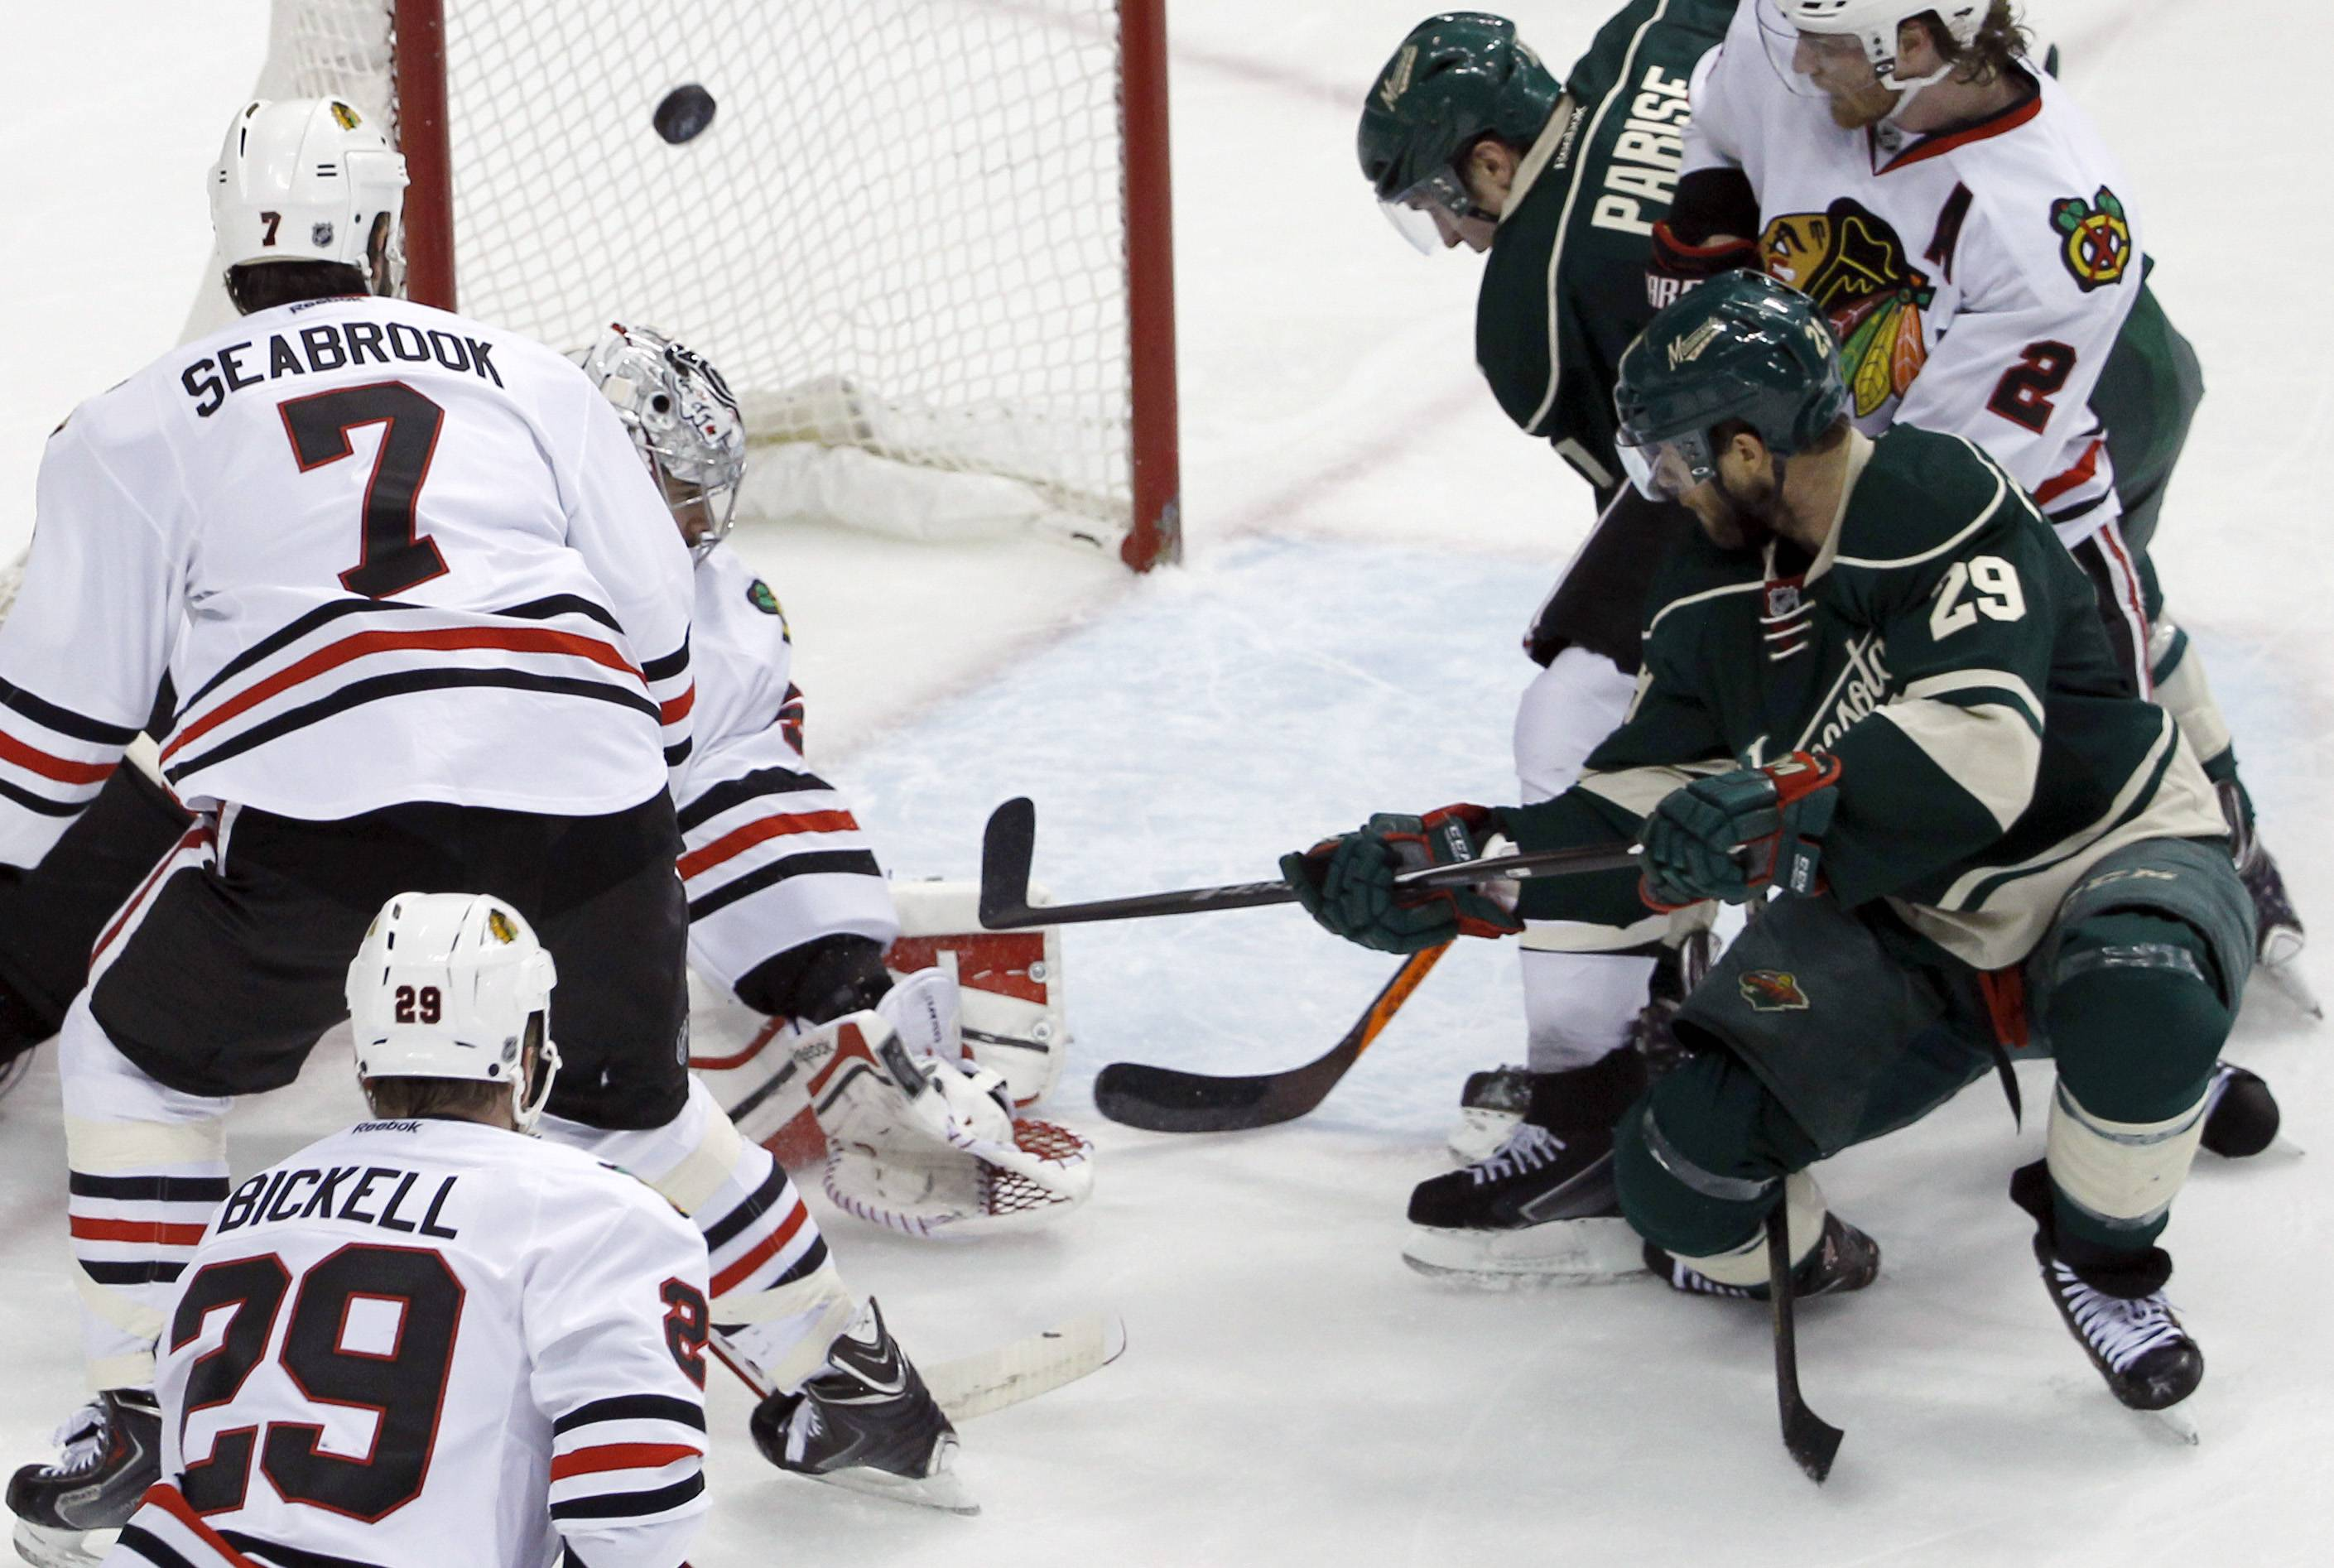 Minnesota Wild right wing Jason Pominville (29) scores on Chicago Blackhawks goalie Corey Crawford in front of Blackhawks defenseman Brent Seabrook (7) during the second period.